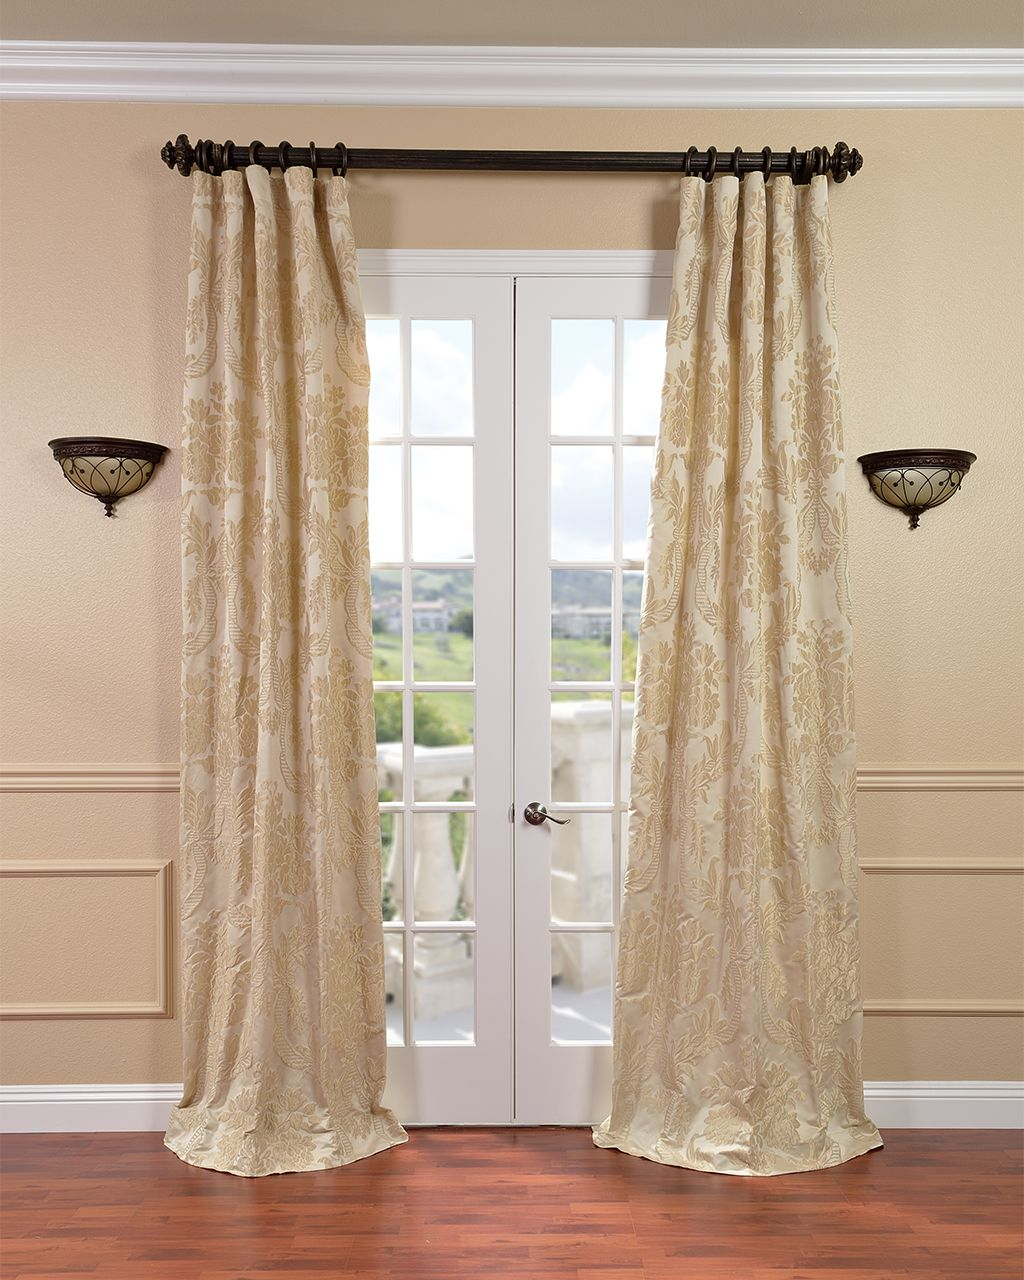 These Faux Silk Jacquard Curtains Add A Touch Of Elegance To Your Living Room